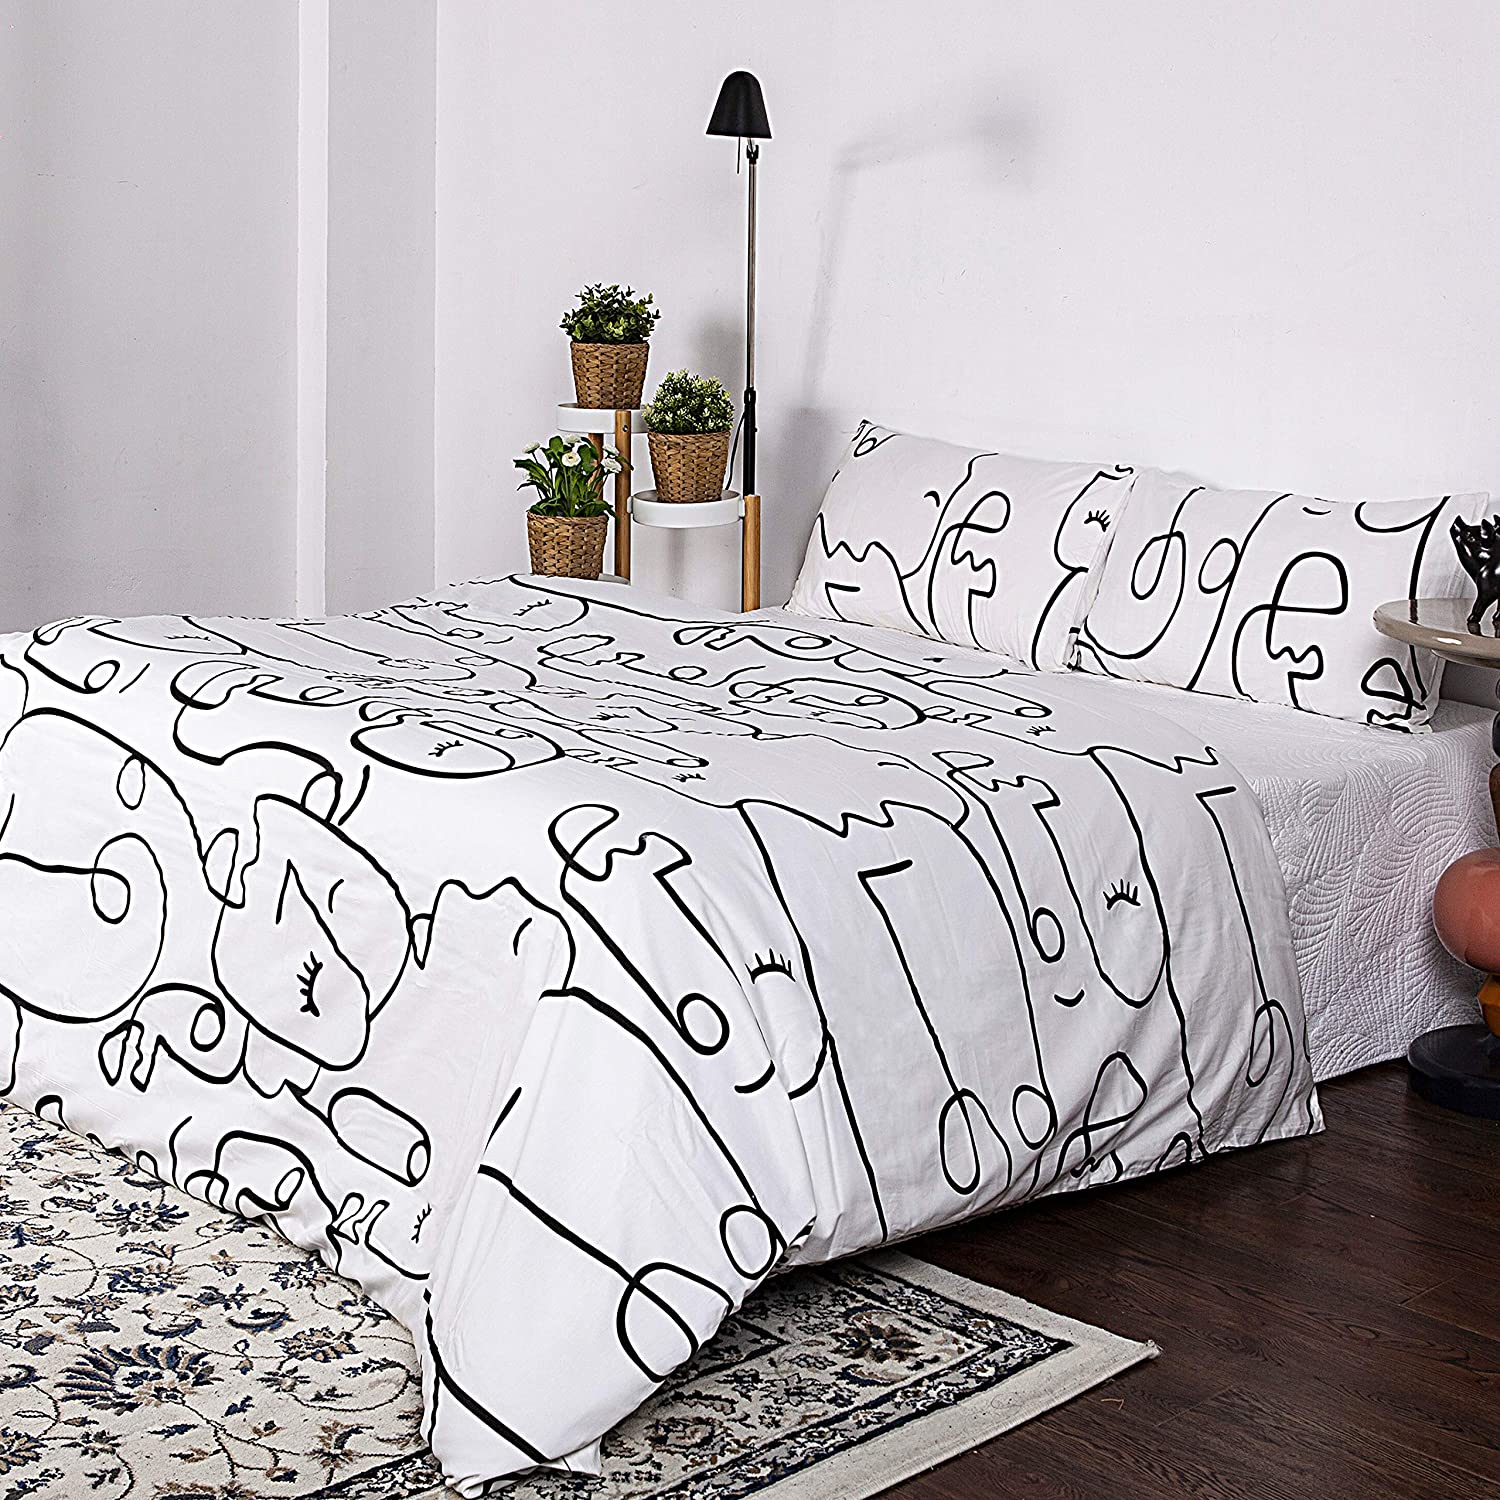 King Sleepymoon 100/% Natural Cotton Duvet Cover Set 1 Duvet Cover + 2 Pillow Shams Printed Pattern with Zipper Closure Soft Breathable Brown and White 3pcs Comforter Cover Set Leopard Print